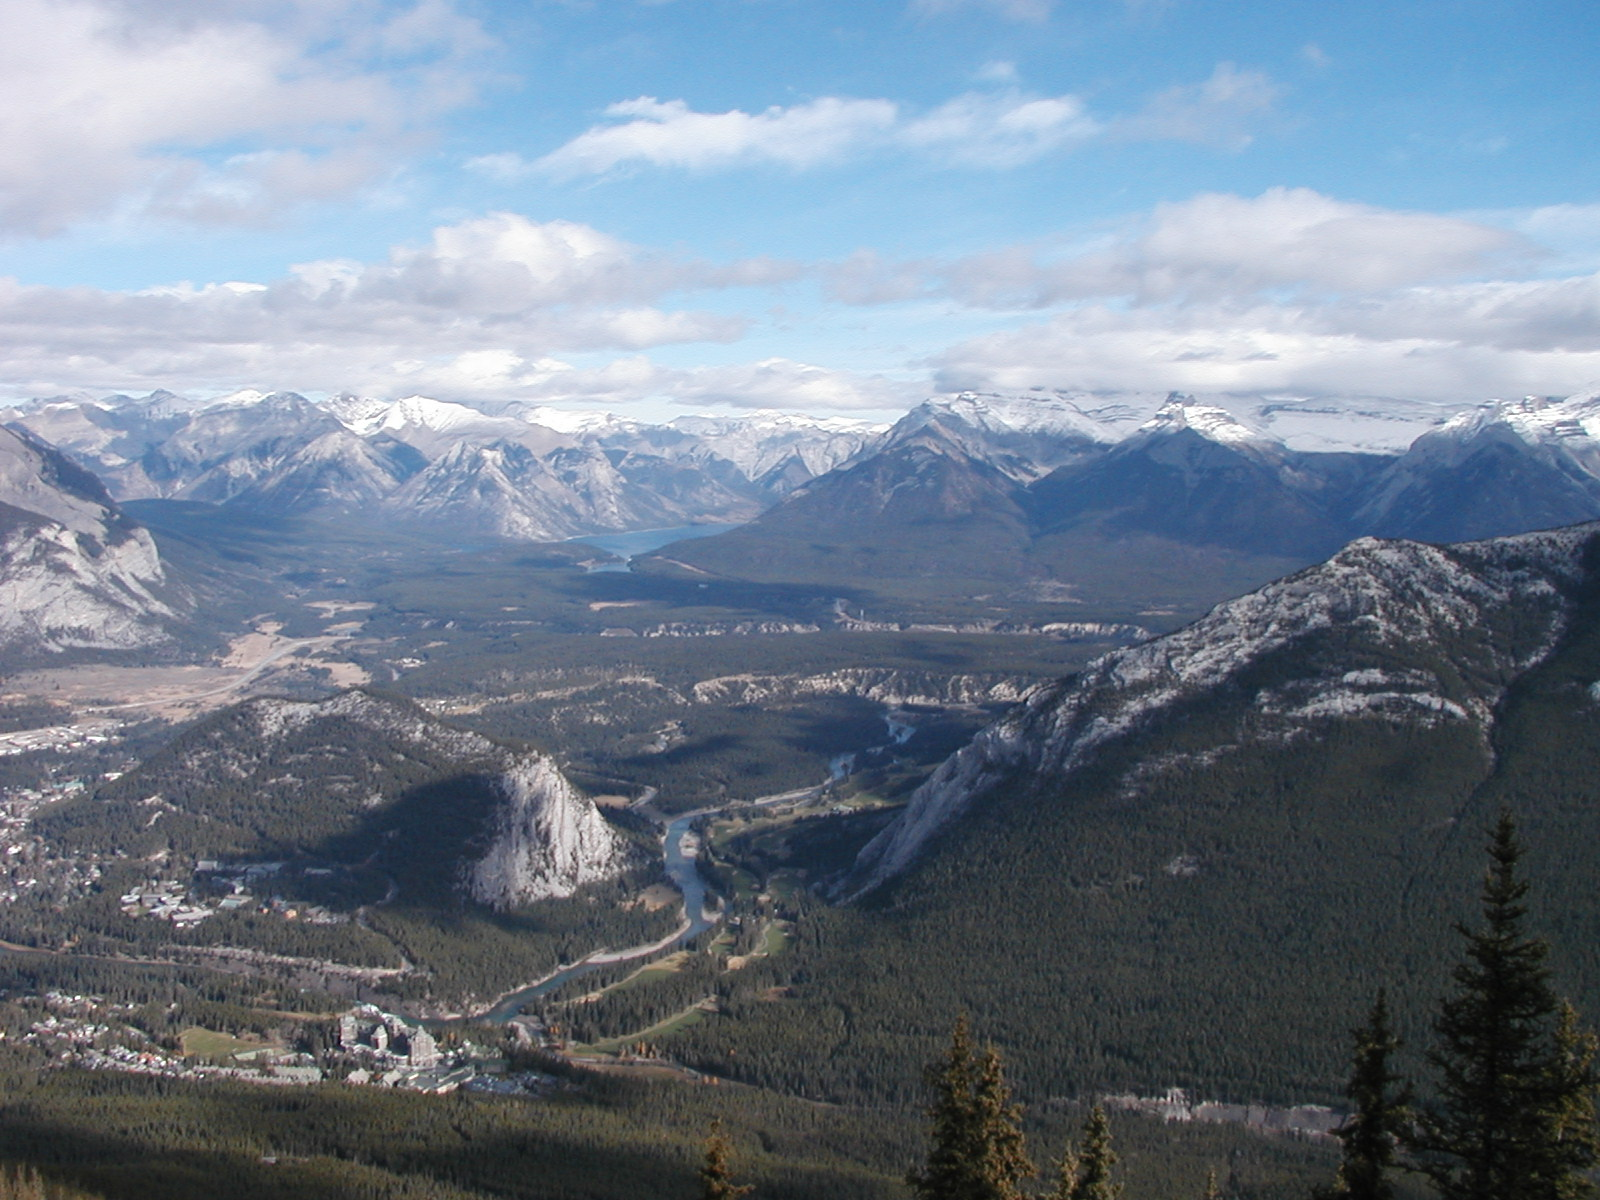 File:View from the top of Sulphur Mountain.jpg - Wikimedia Commons